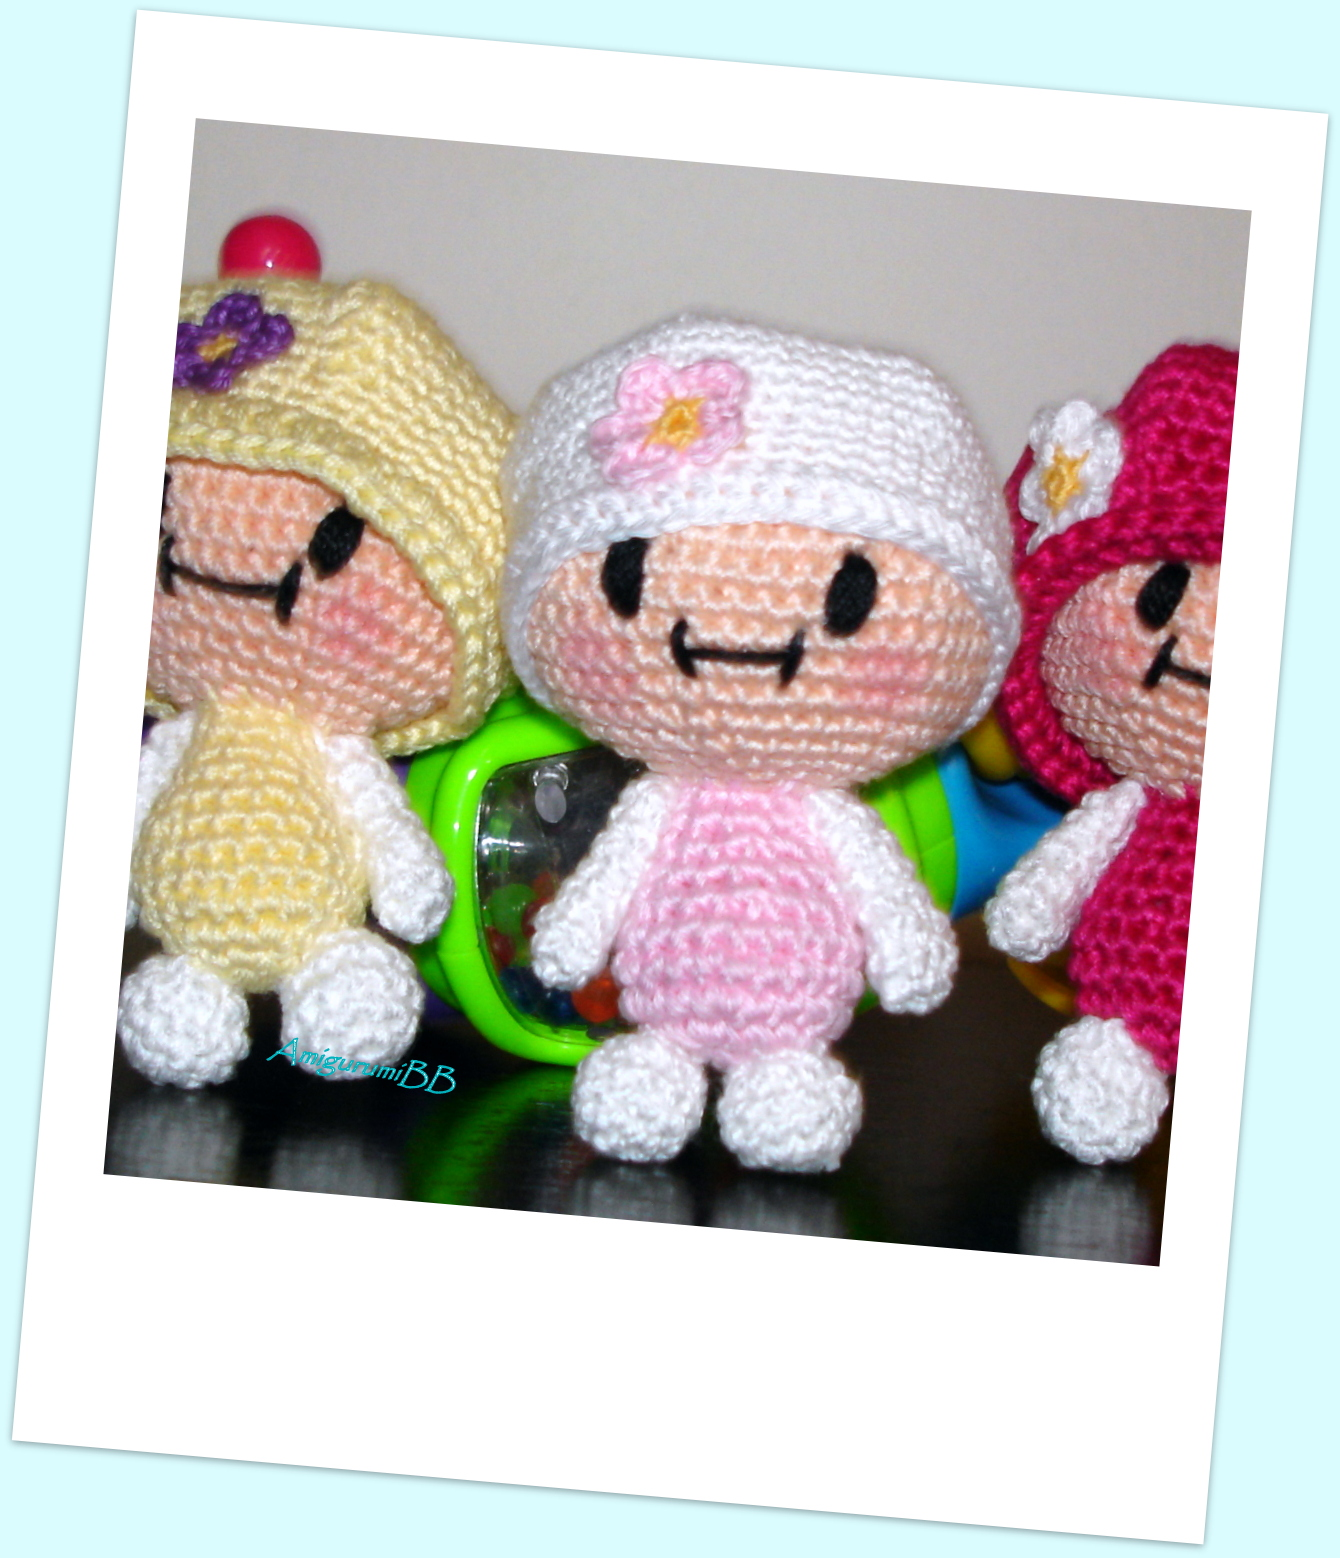 Small Amigurumi Doll Pattern : Free amigurumi pattern! Little Karla Girl AmigurumiBBs Blog